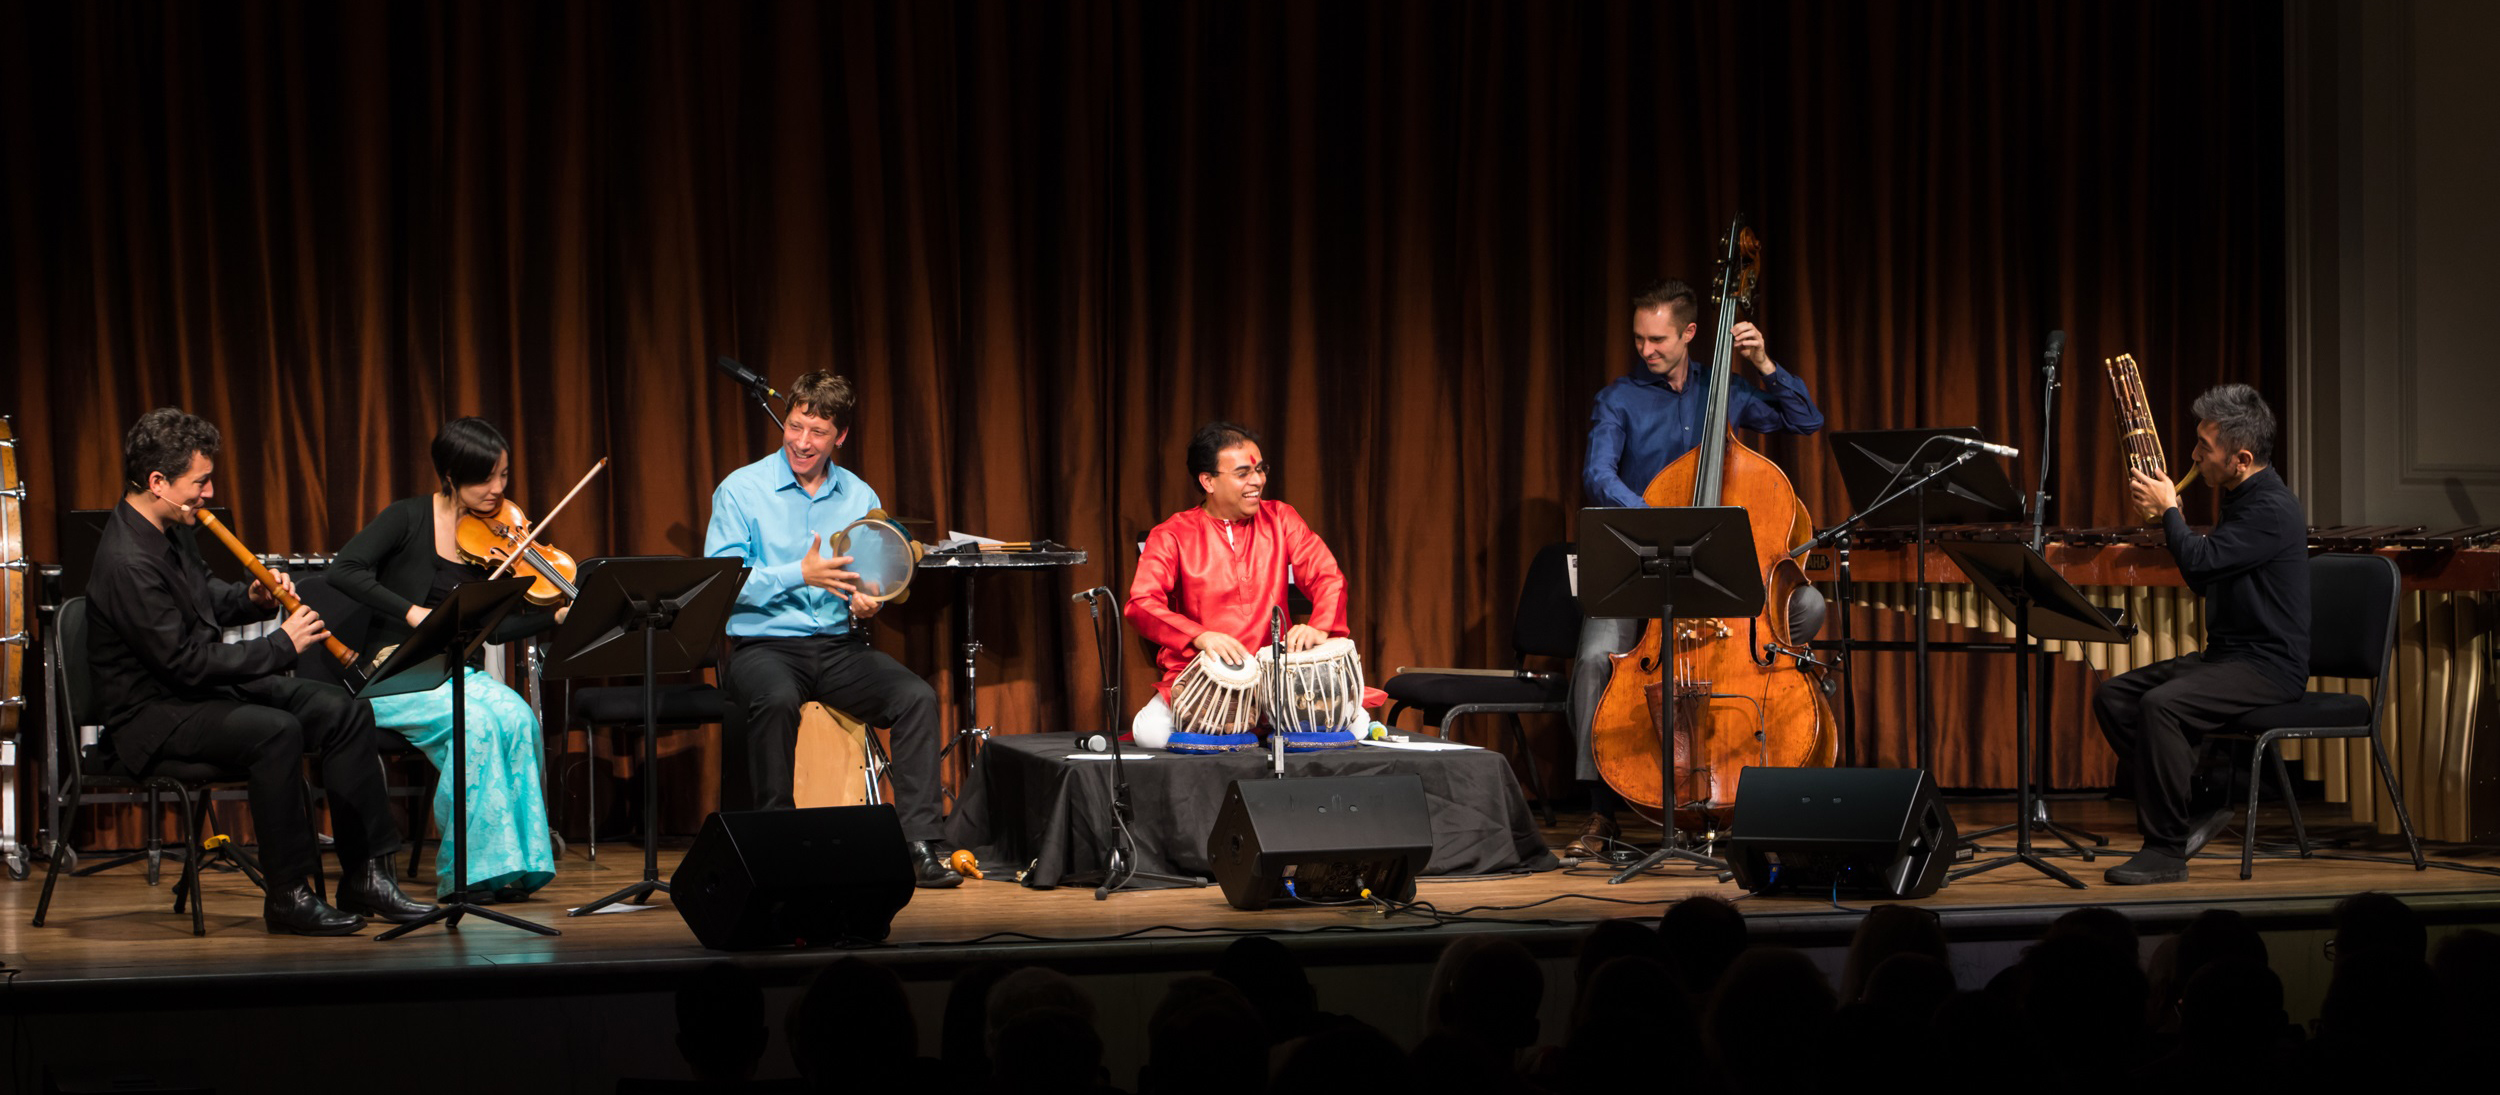 Members of the Silkroad Ensemble performing a new composition at the Freer|Sackler.